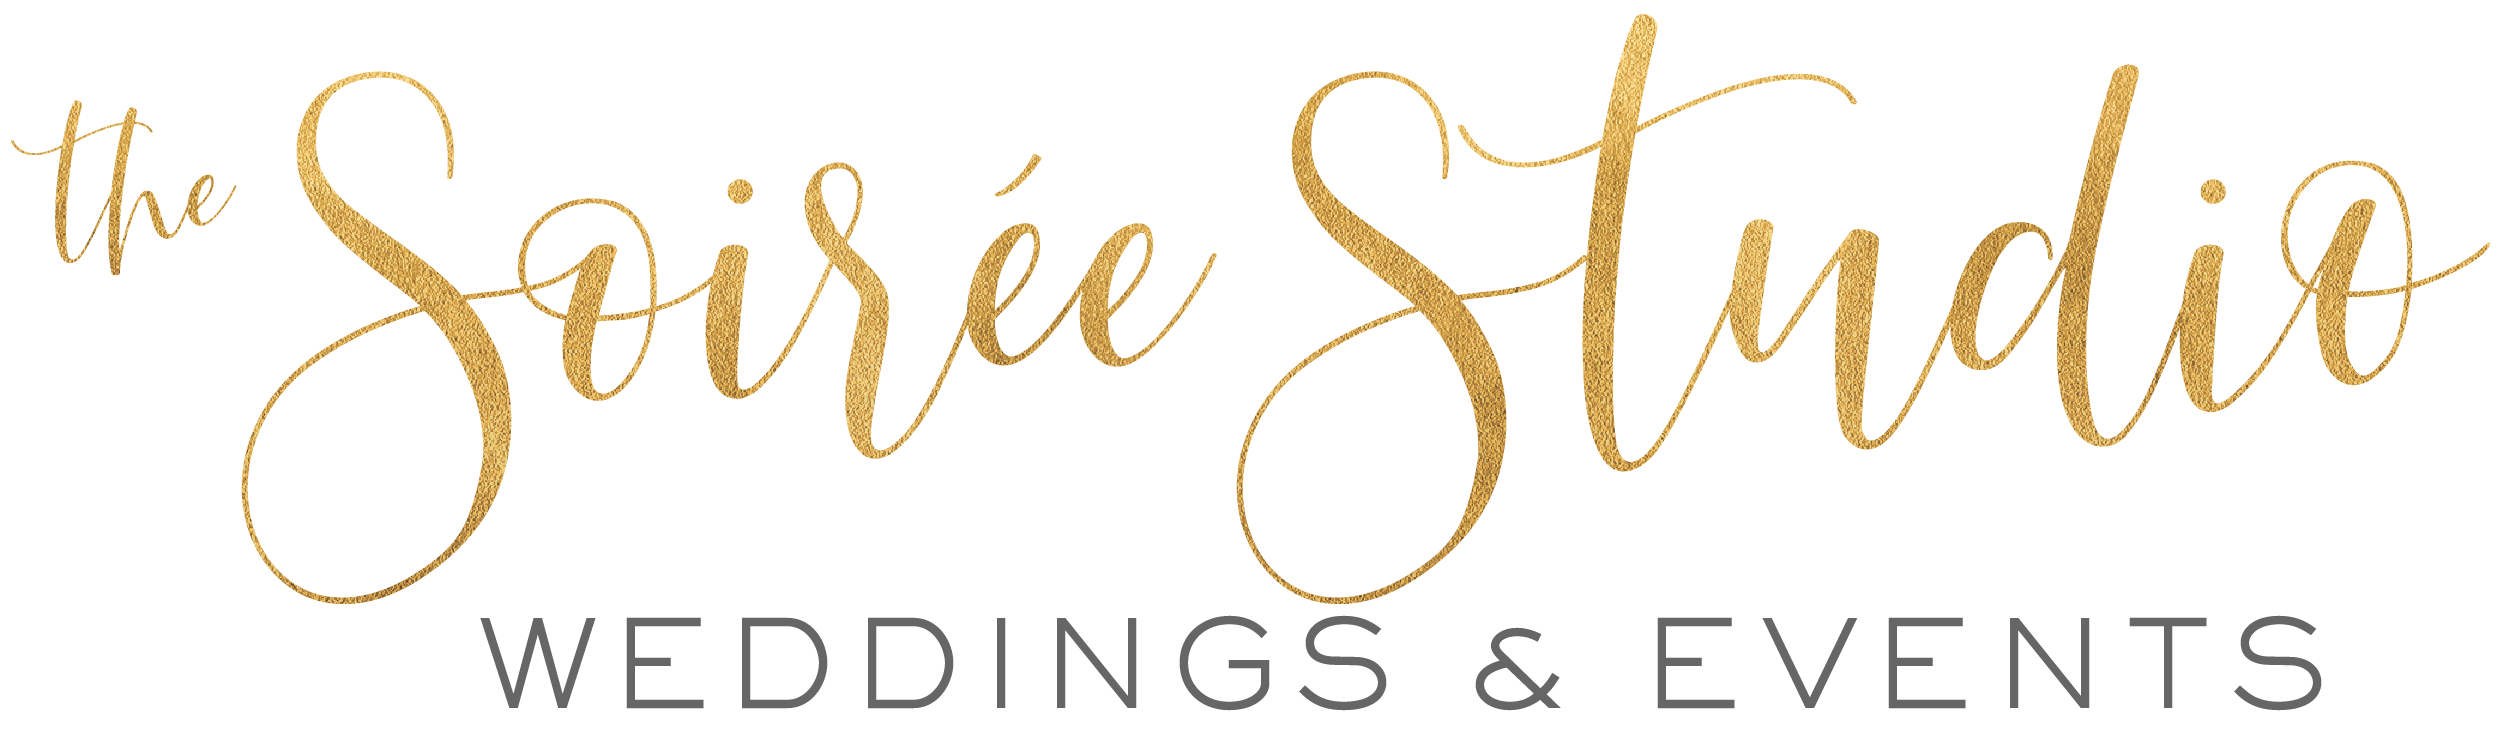 Event Planning Services Colorado Wedding Planners The Soire Studio